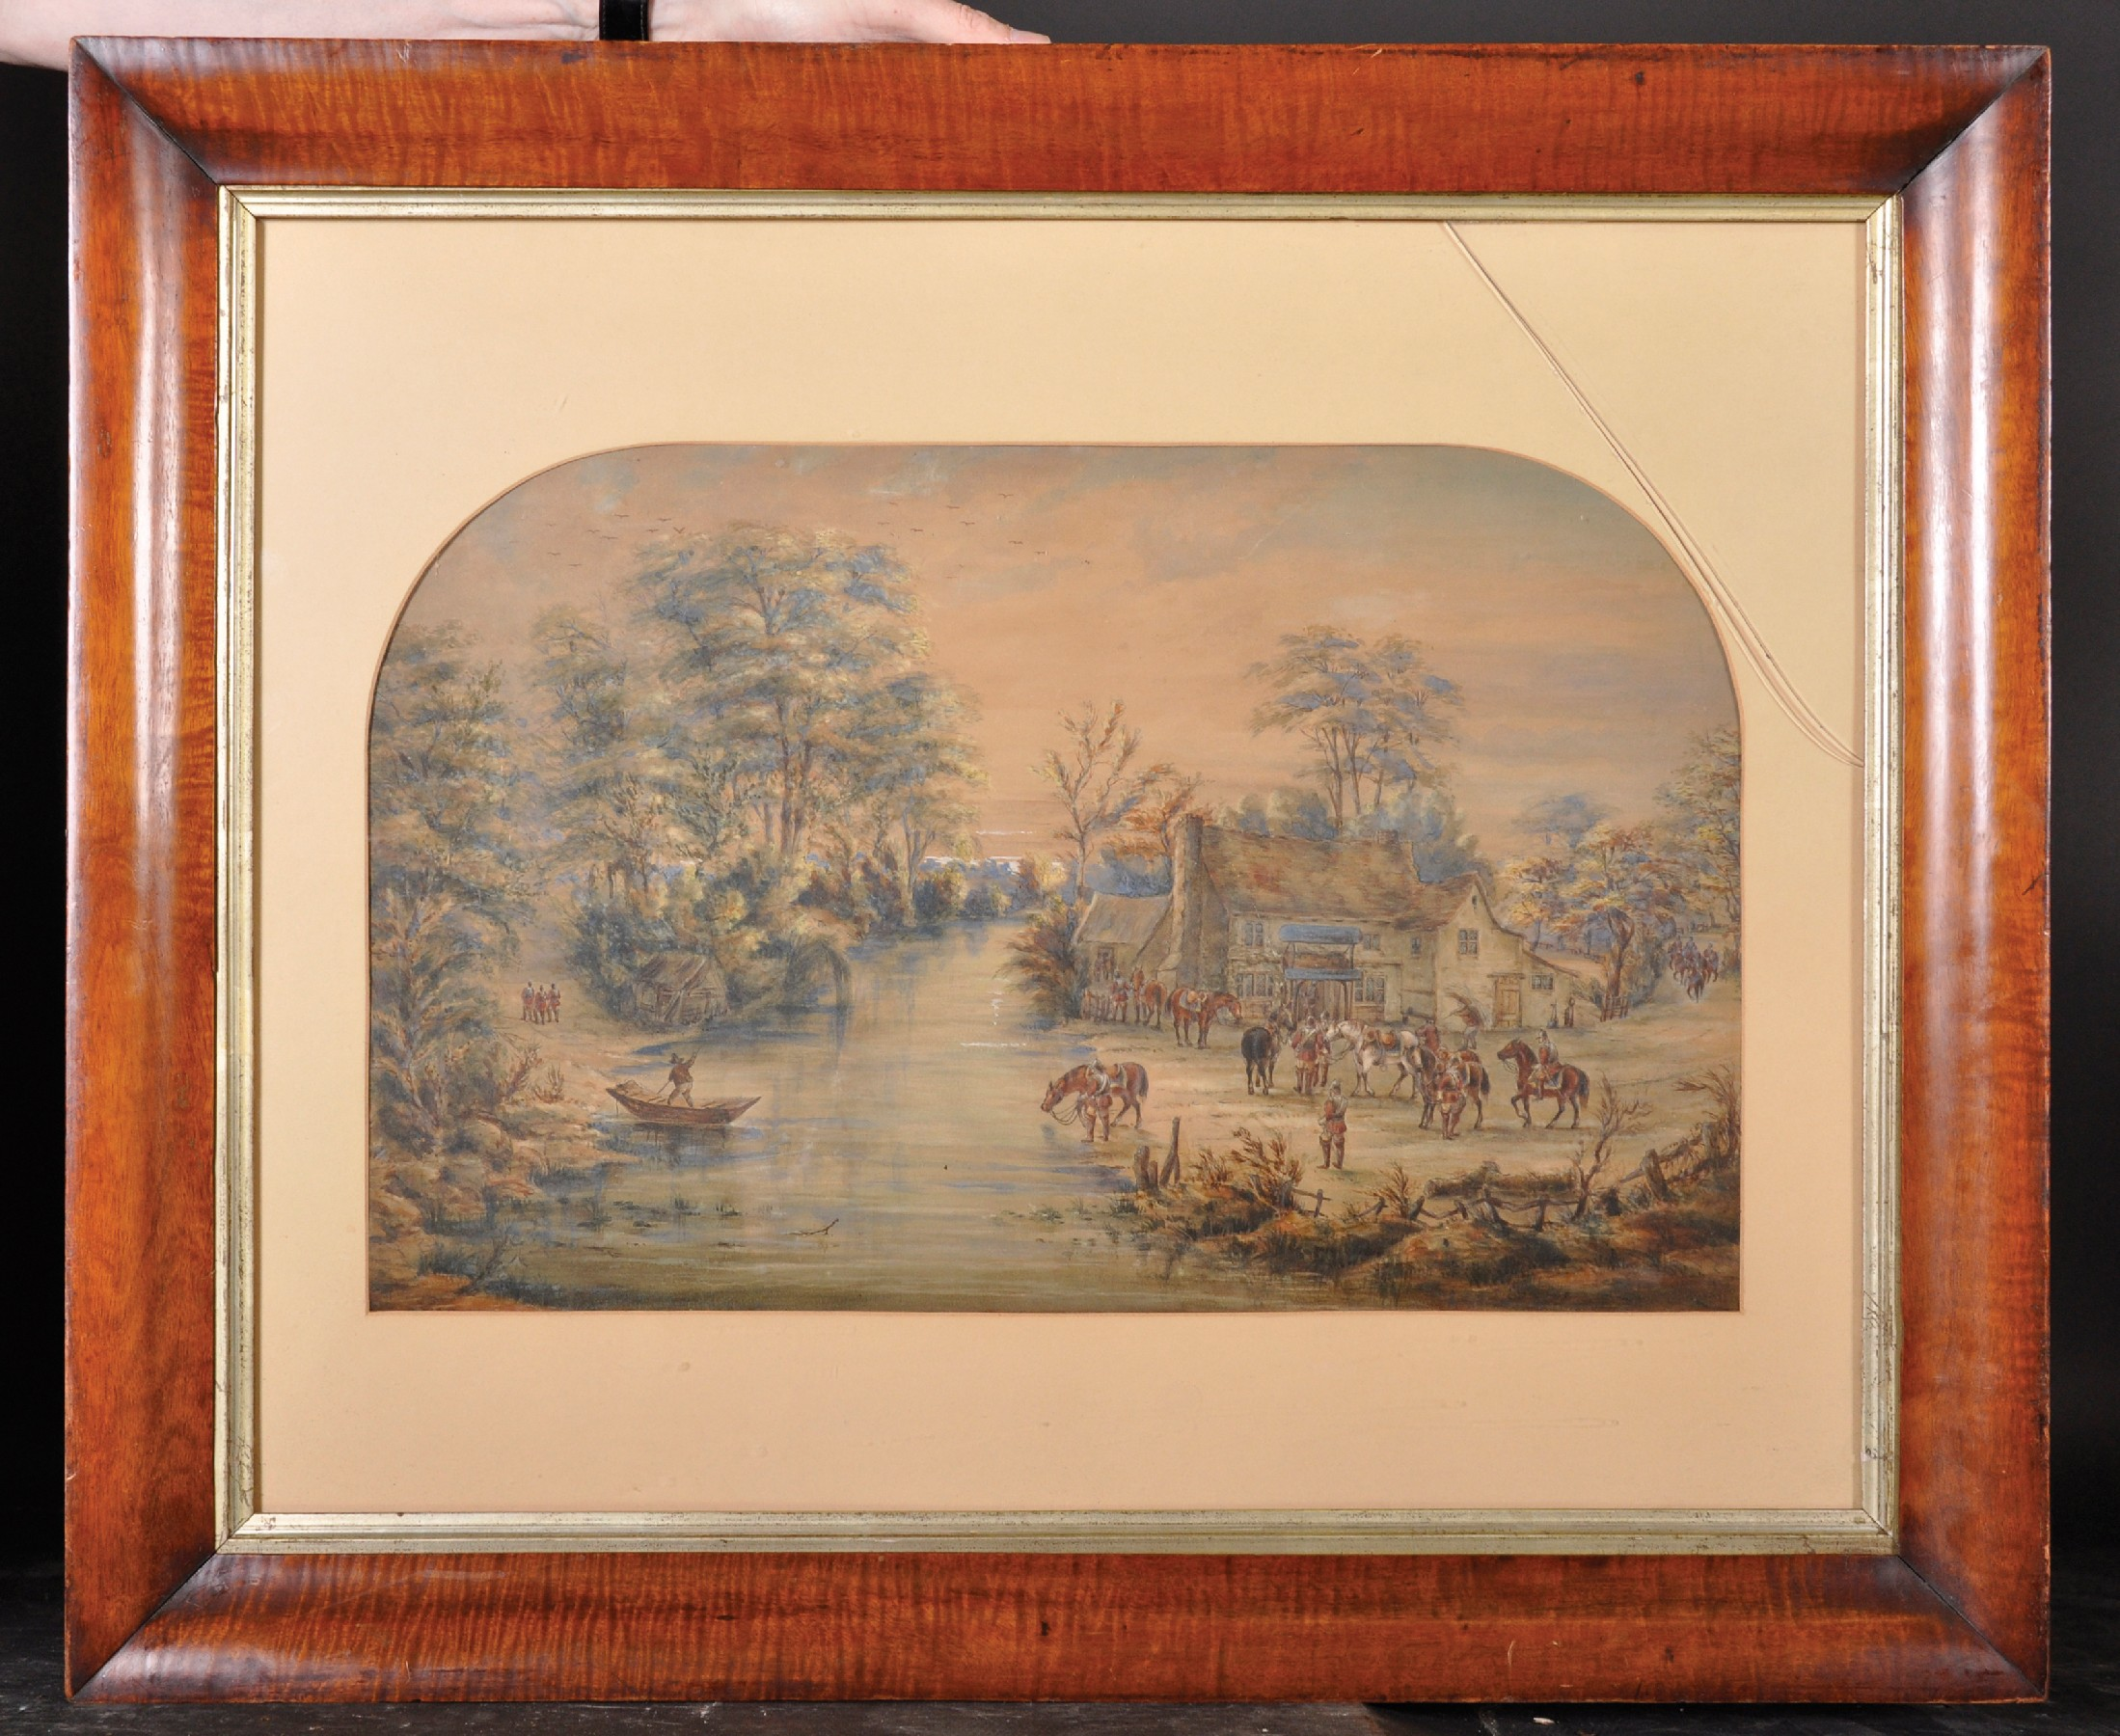 19th Century Continental School. A Riverside Inn with Soldiers at Rest, Watercolour, Arched, in a - Image 2 of 4